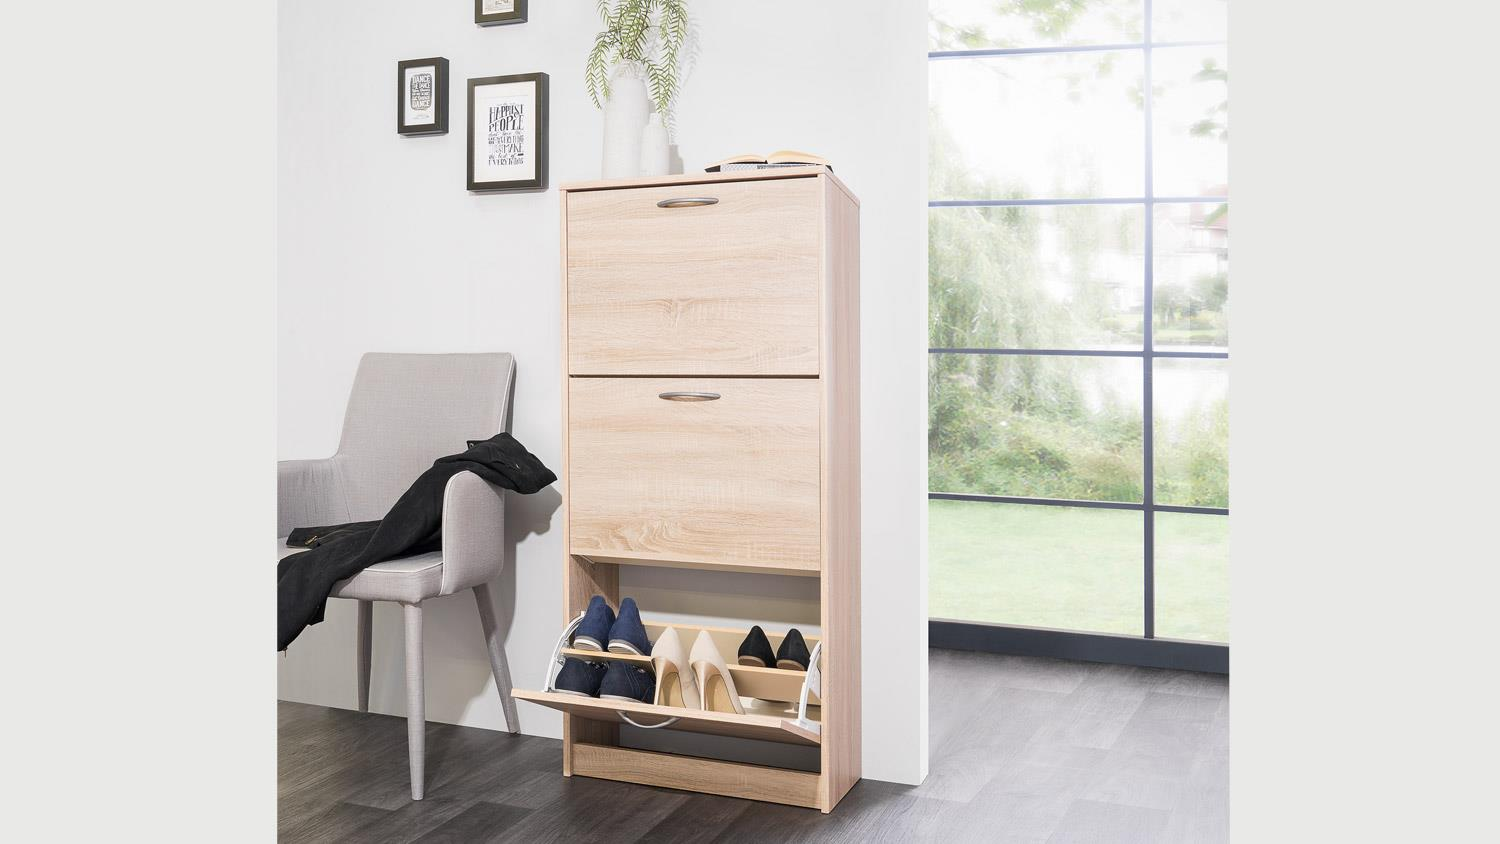 schuhschrank mainz 1 schuhkipper eiche sonoma mit 3 klappen. Black Bedroom Furniture Sets. Home Design Ideas